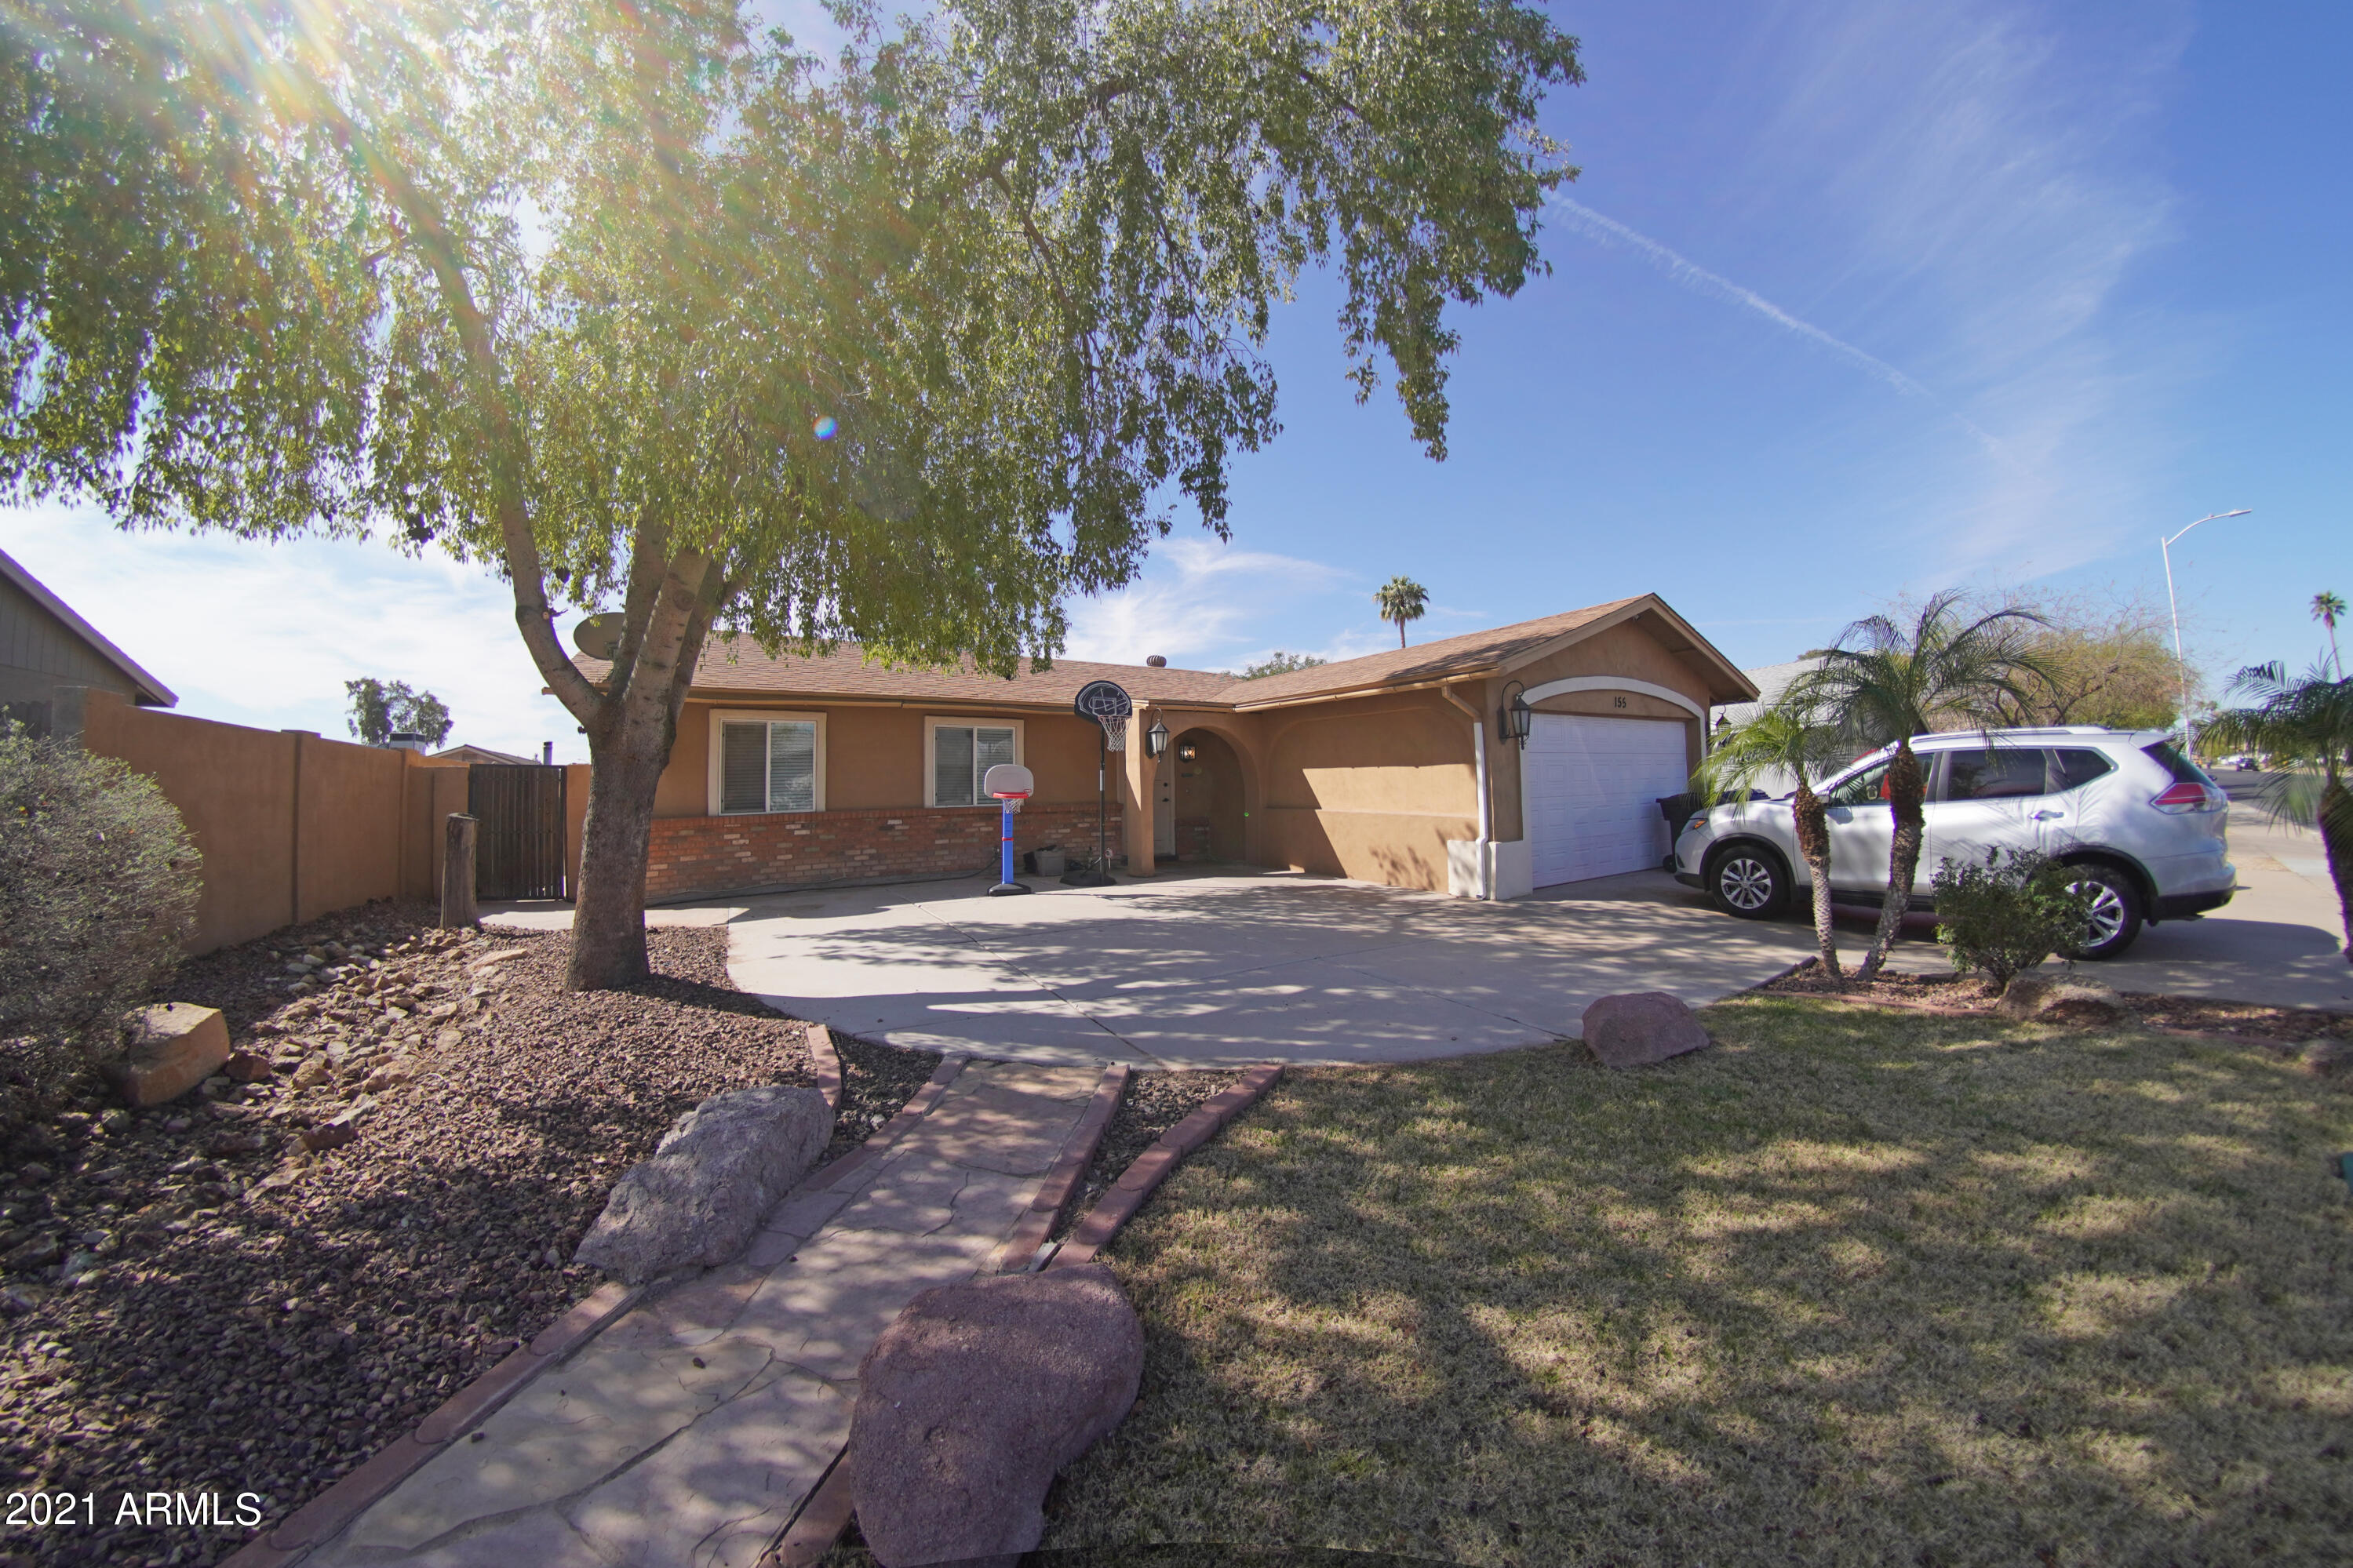 Back on the Market! Beautiful 3 bedroom, 2 bathroom home in the heart of Mesa, close to North Loop 202! This home features  an oversized living room, tile in high traffic areas and carpet in the living room and bedrooms. Through 2 French doors you head out to the backward and are greeted by grass, a built in fireplace and grill. RV gate on the side of the home  gives easy access to the backyard. NO HOA! The A/C unit is less than 1 year old